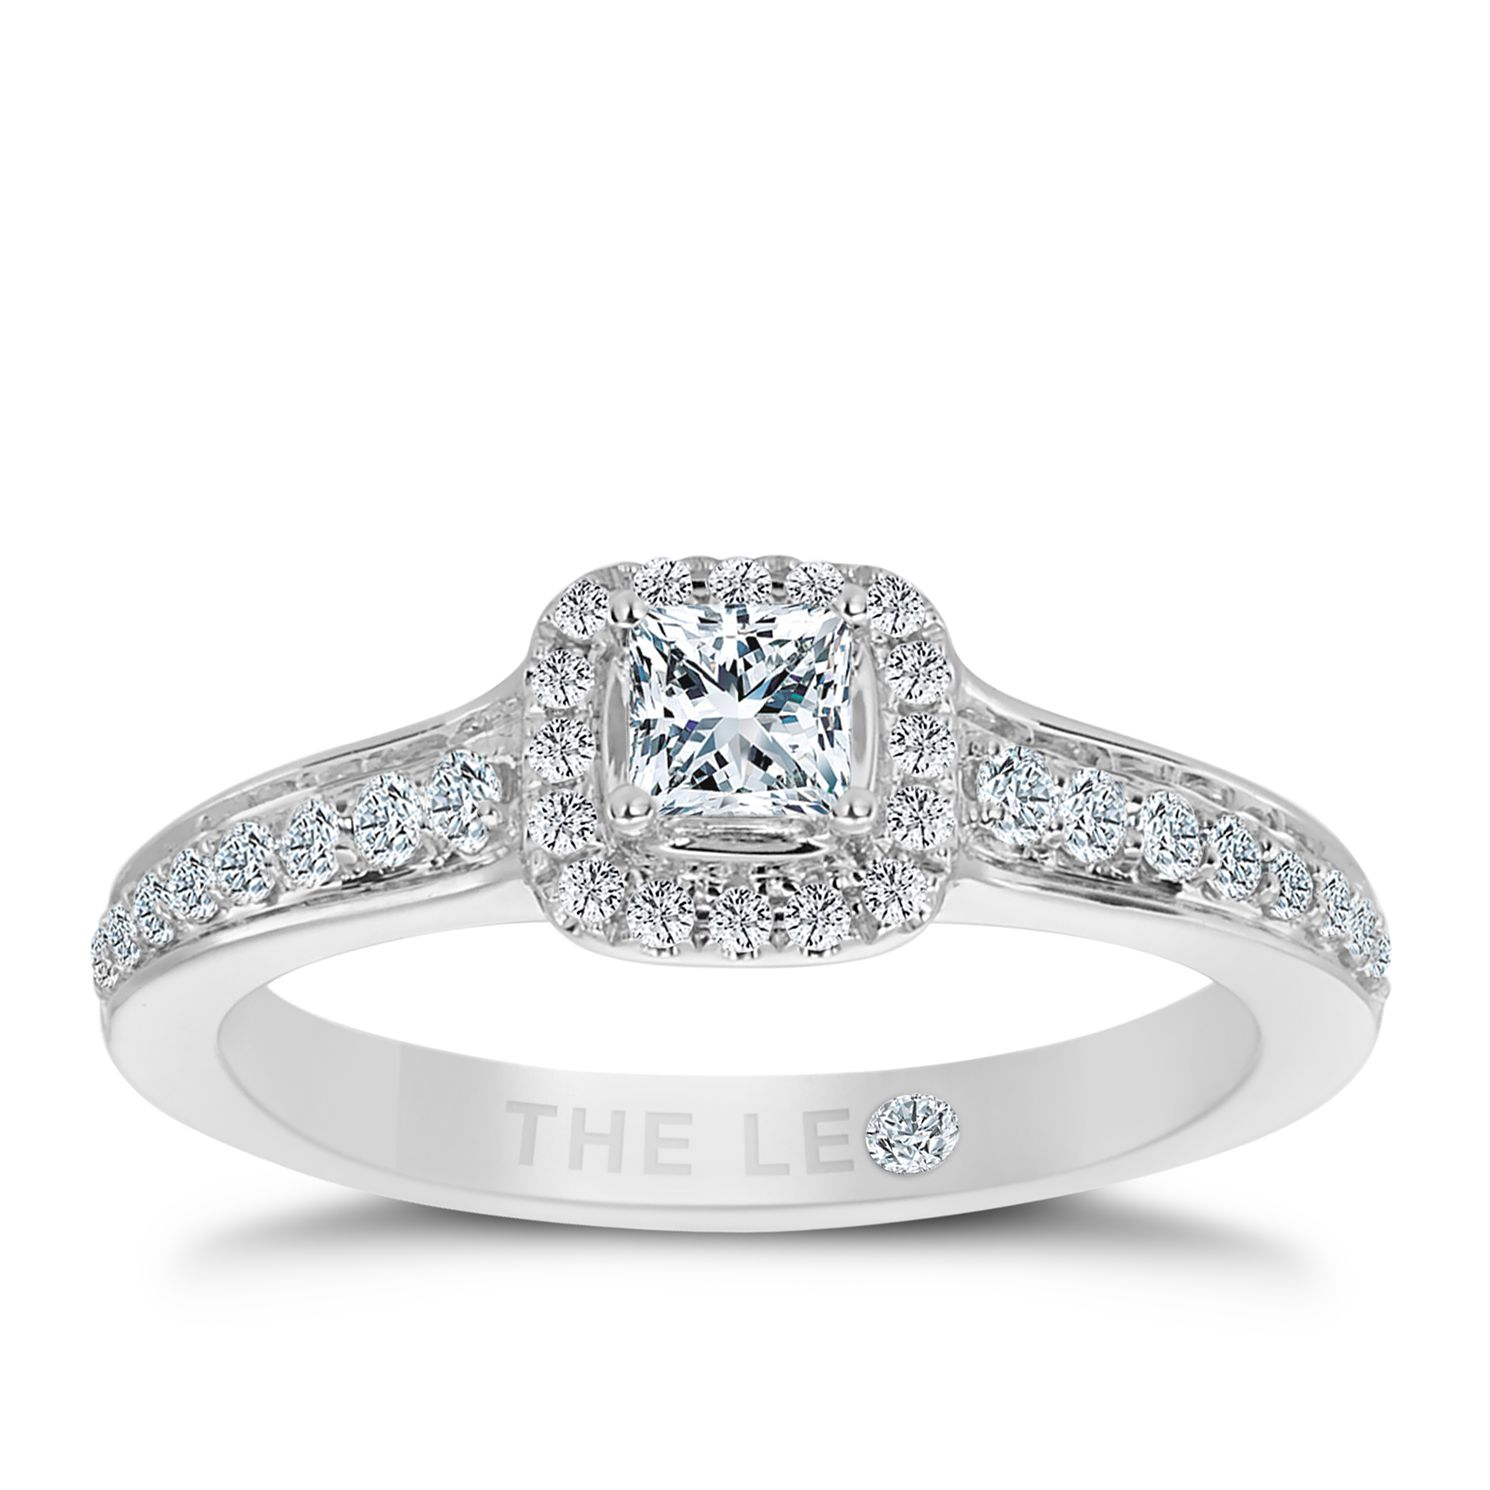 Leo Diamond 18ct White Gold 1/2ct Ii1 Diamond Halo Ring - Product number 5513774